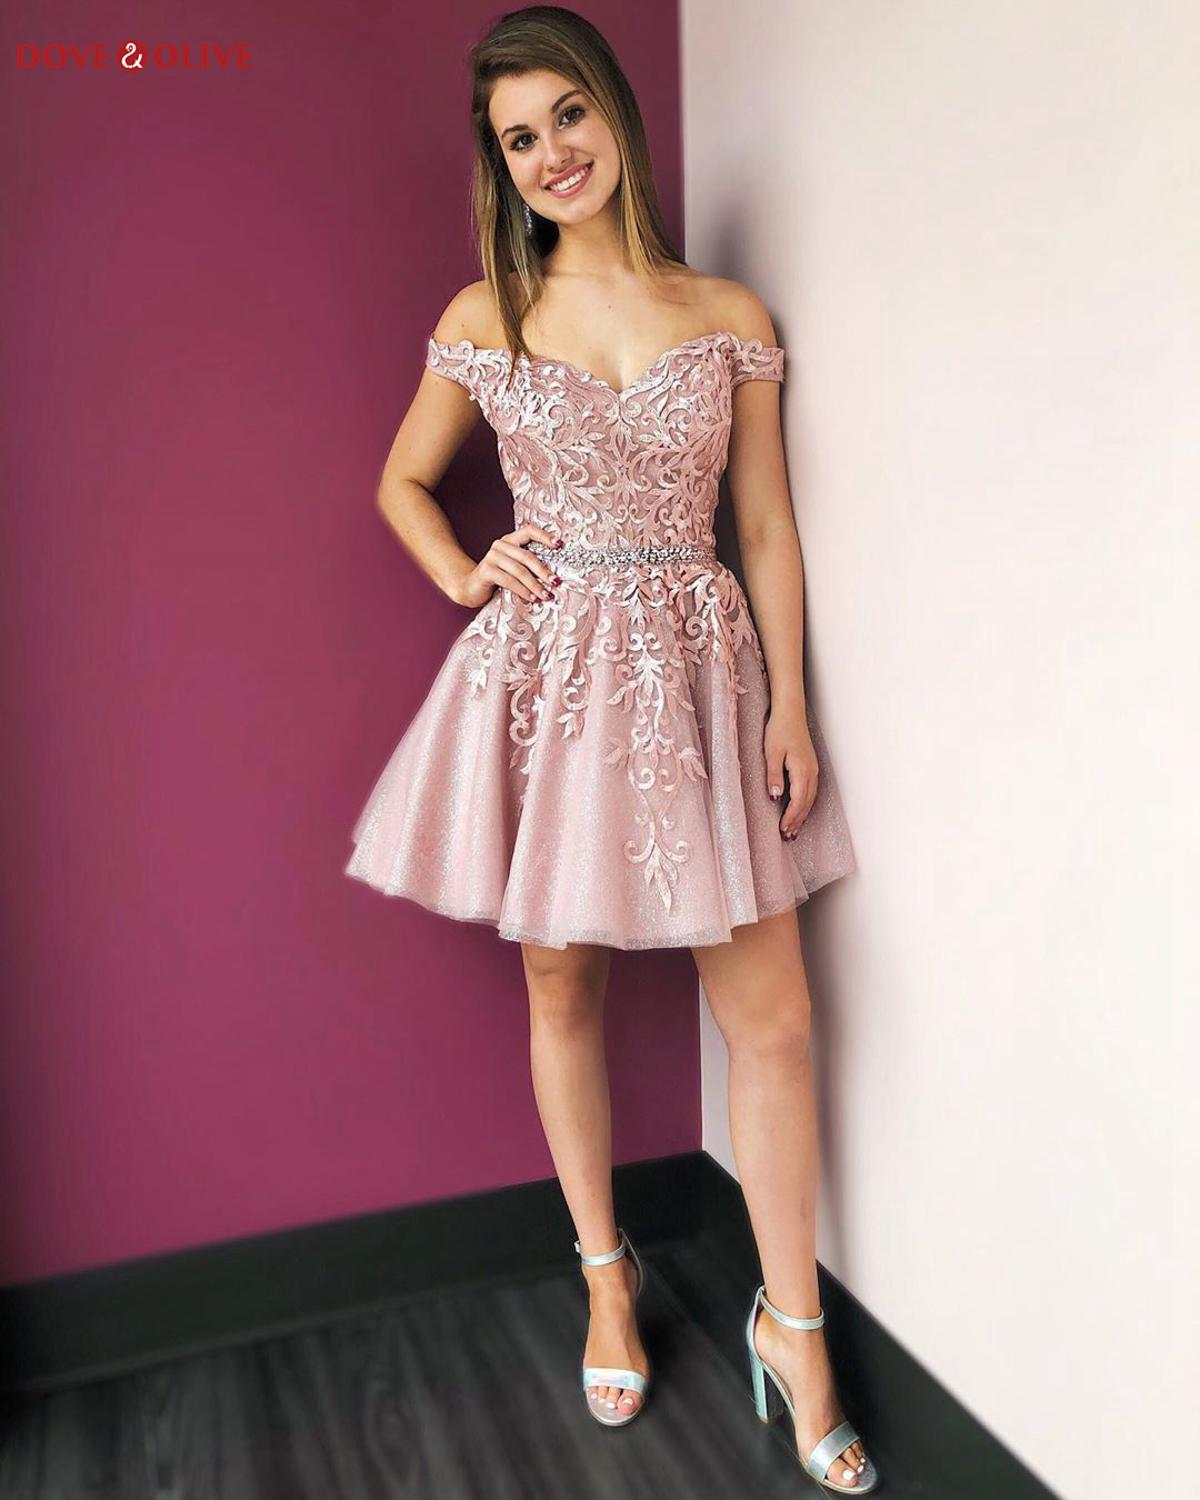 Off the Shoulder Blush Pink Cocktail Dresses 2020 Short Off Shoulder Sweetheart Ball Gown Sequined Party Gowns Formal Graduation